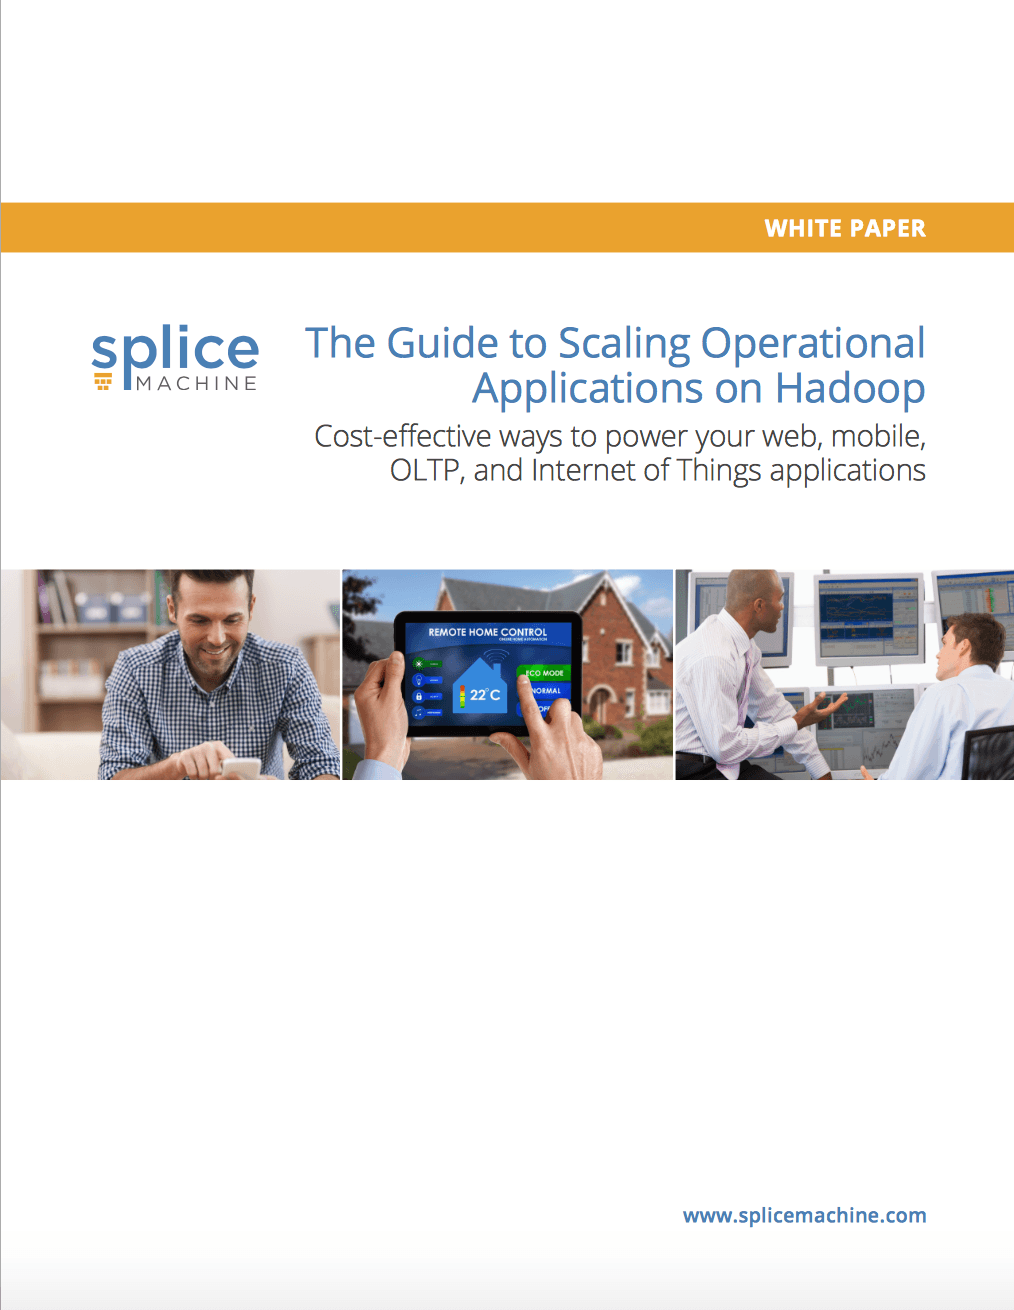 White paper_The Guide to Scaling Operational Applications on Hadoop